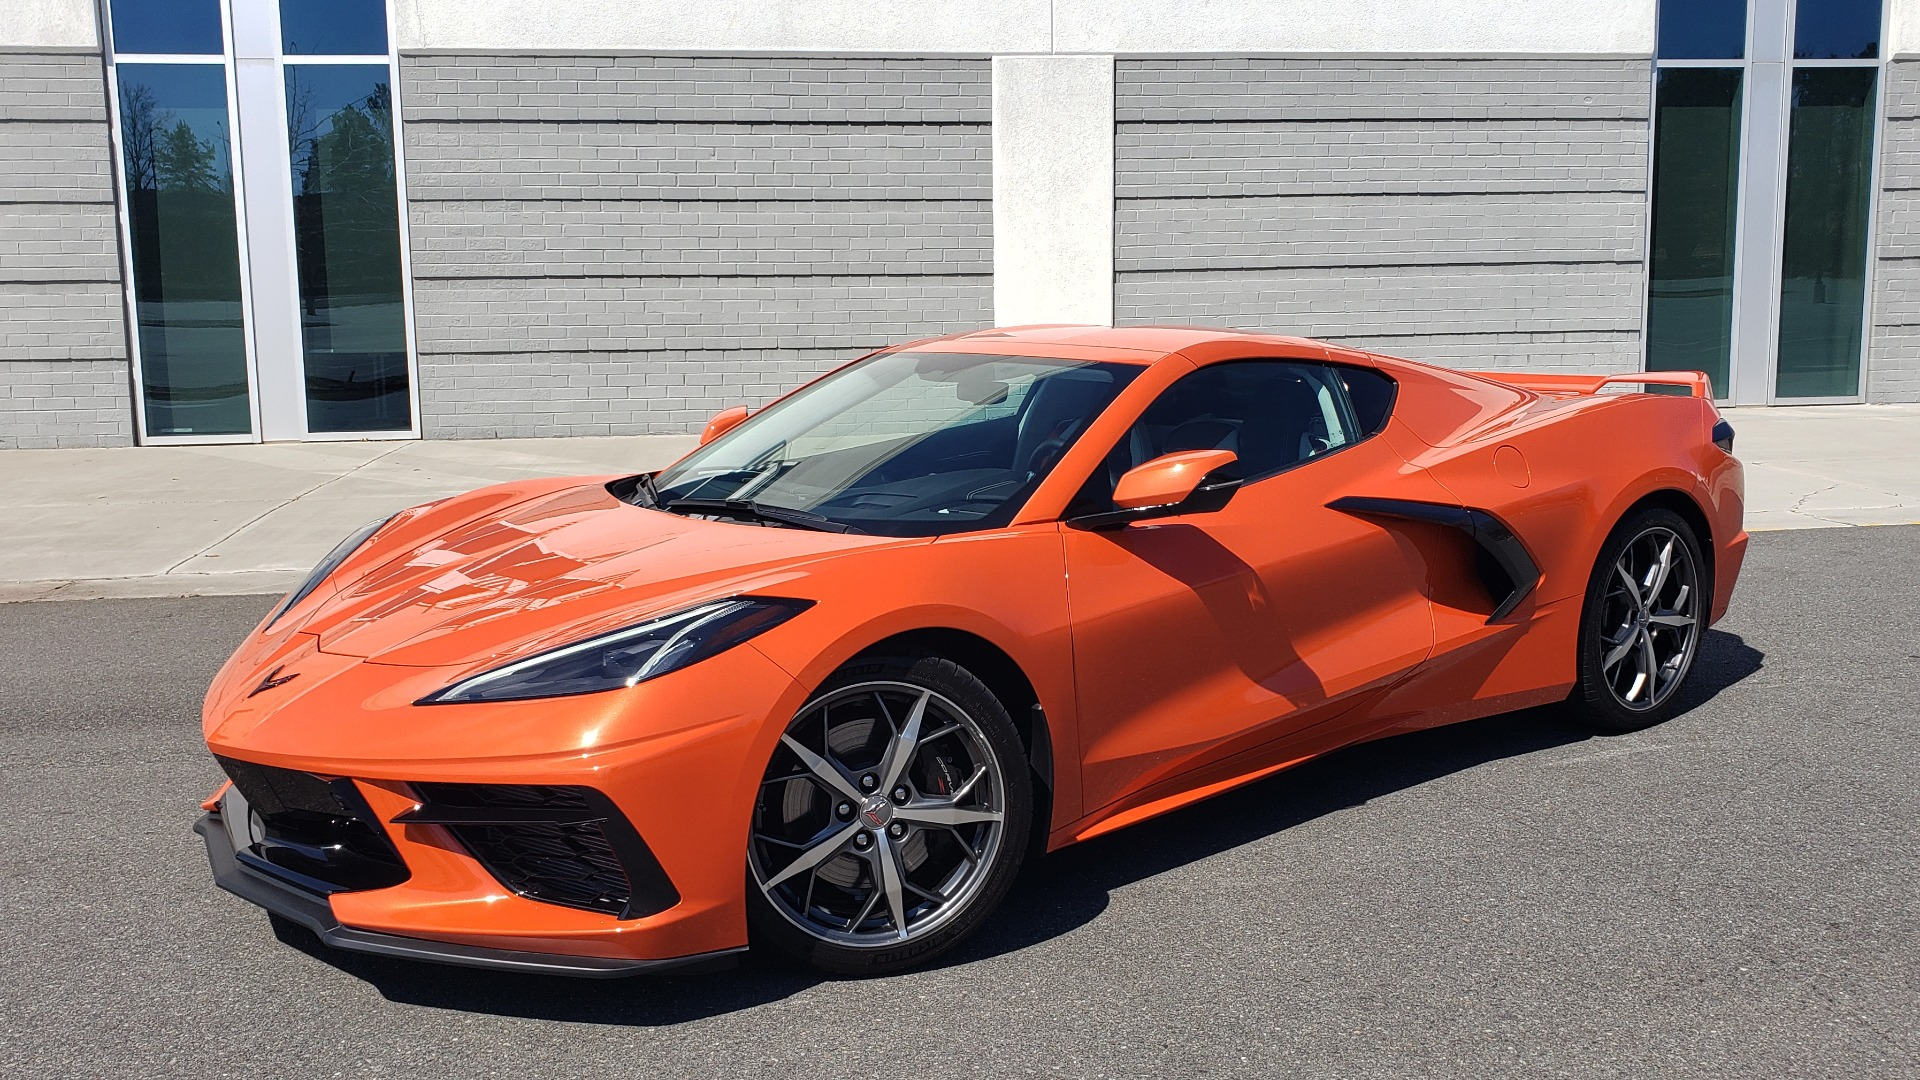 Used 2020 Chevrolet CORVETTE C8 STINGRAY 3LT COUPE / NAV / BOSE / CAMERA / LIKE NEW for sale Sold at Formula Imports in Charlotte NC 28227 64